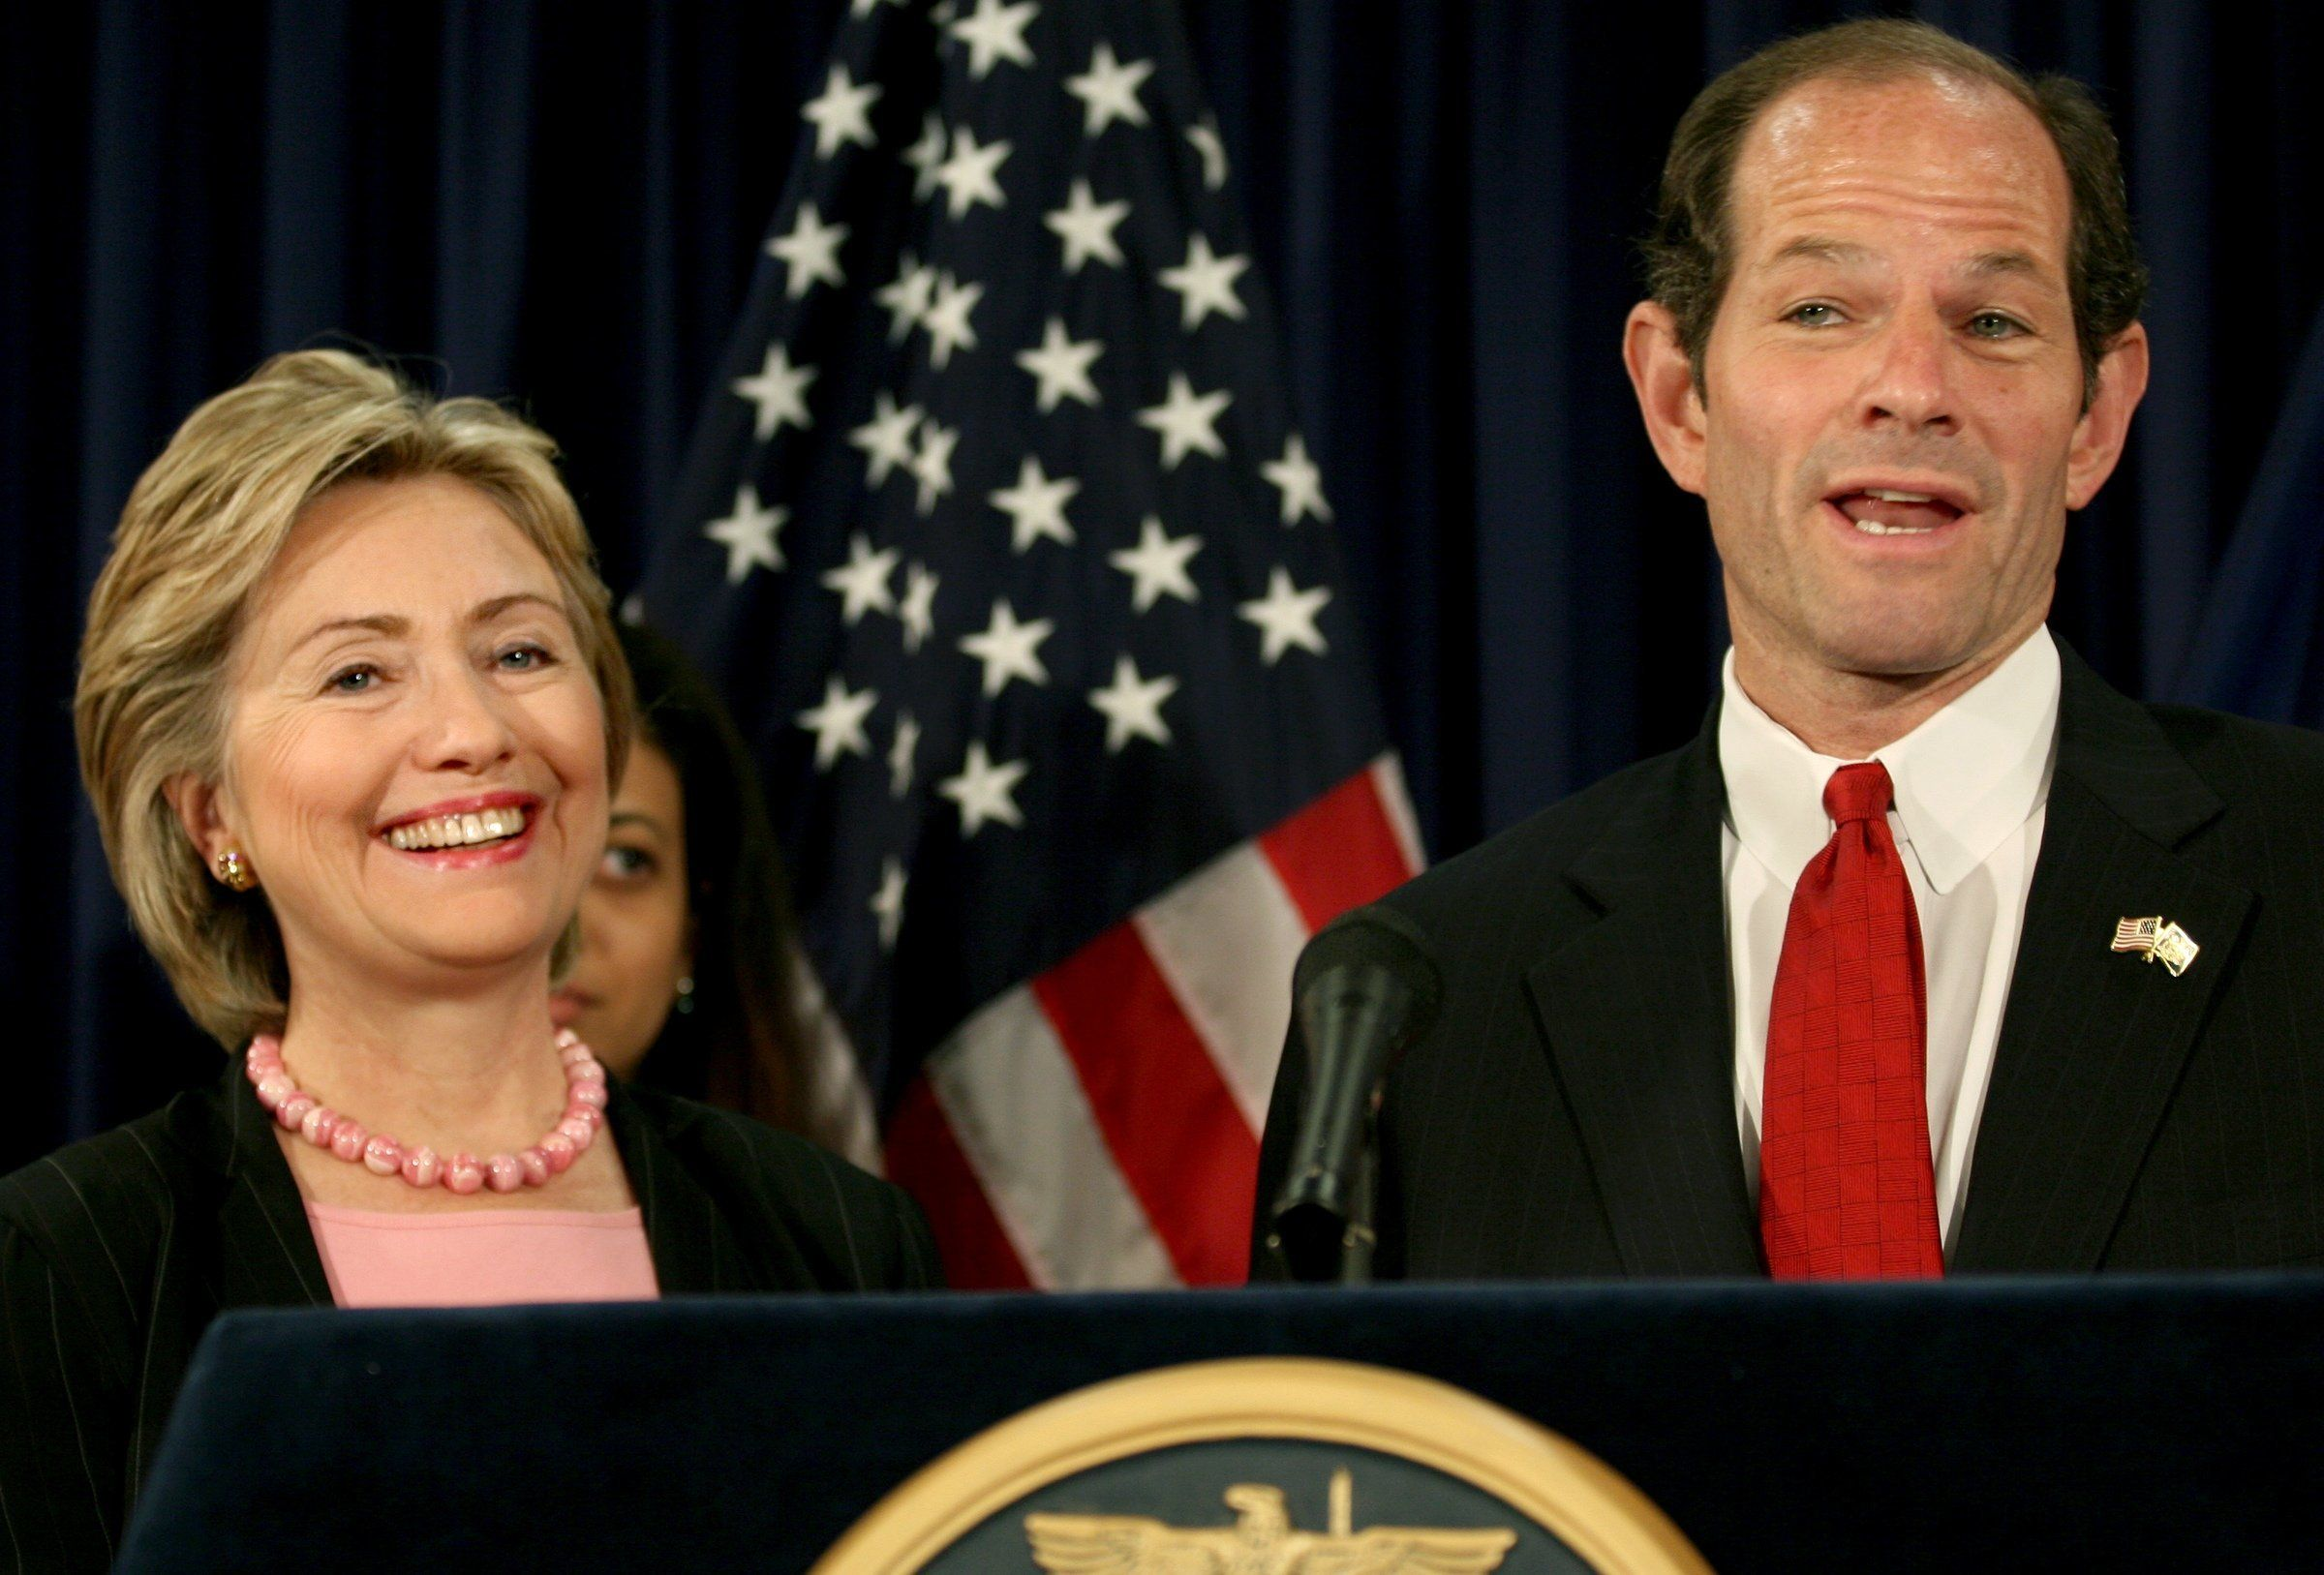 Then-Sen. Hillary Clinton (D-N.Y.) opposed the state's Democratic Gov. Eliot Spitzer on driver's licenses for undocumented im